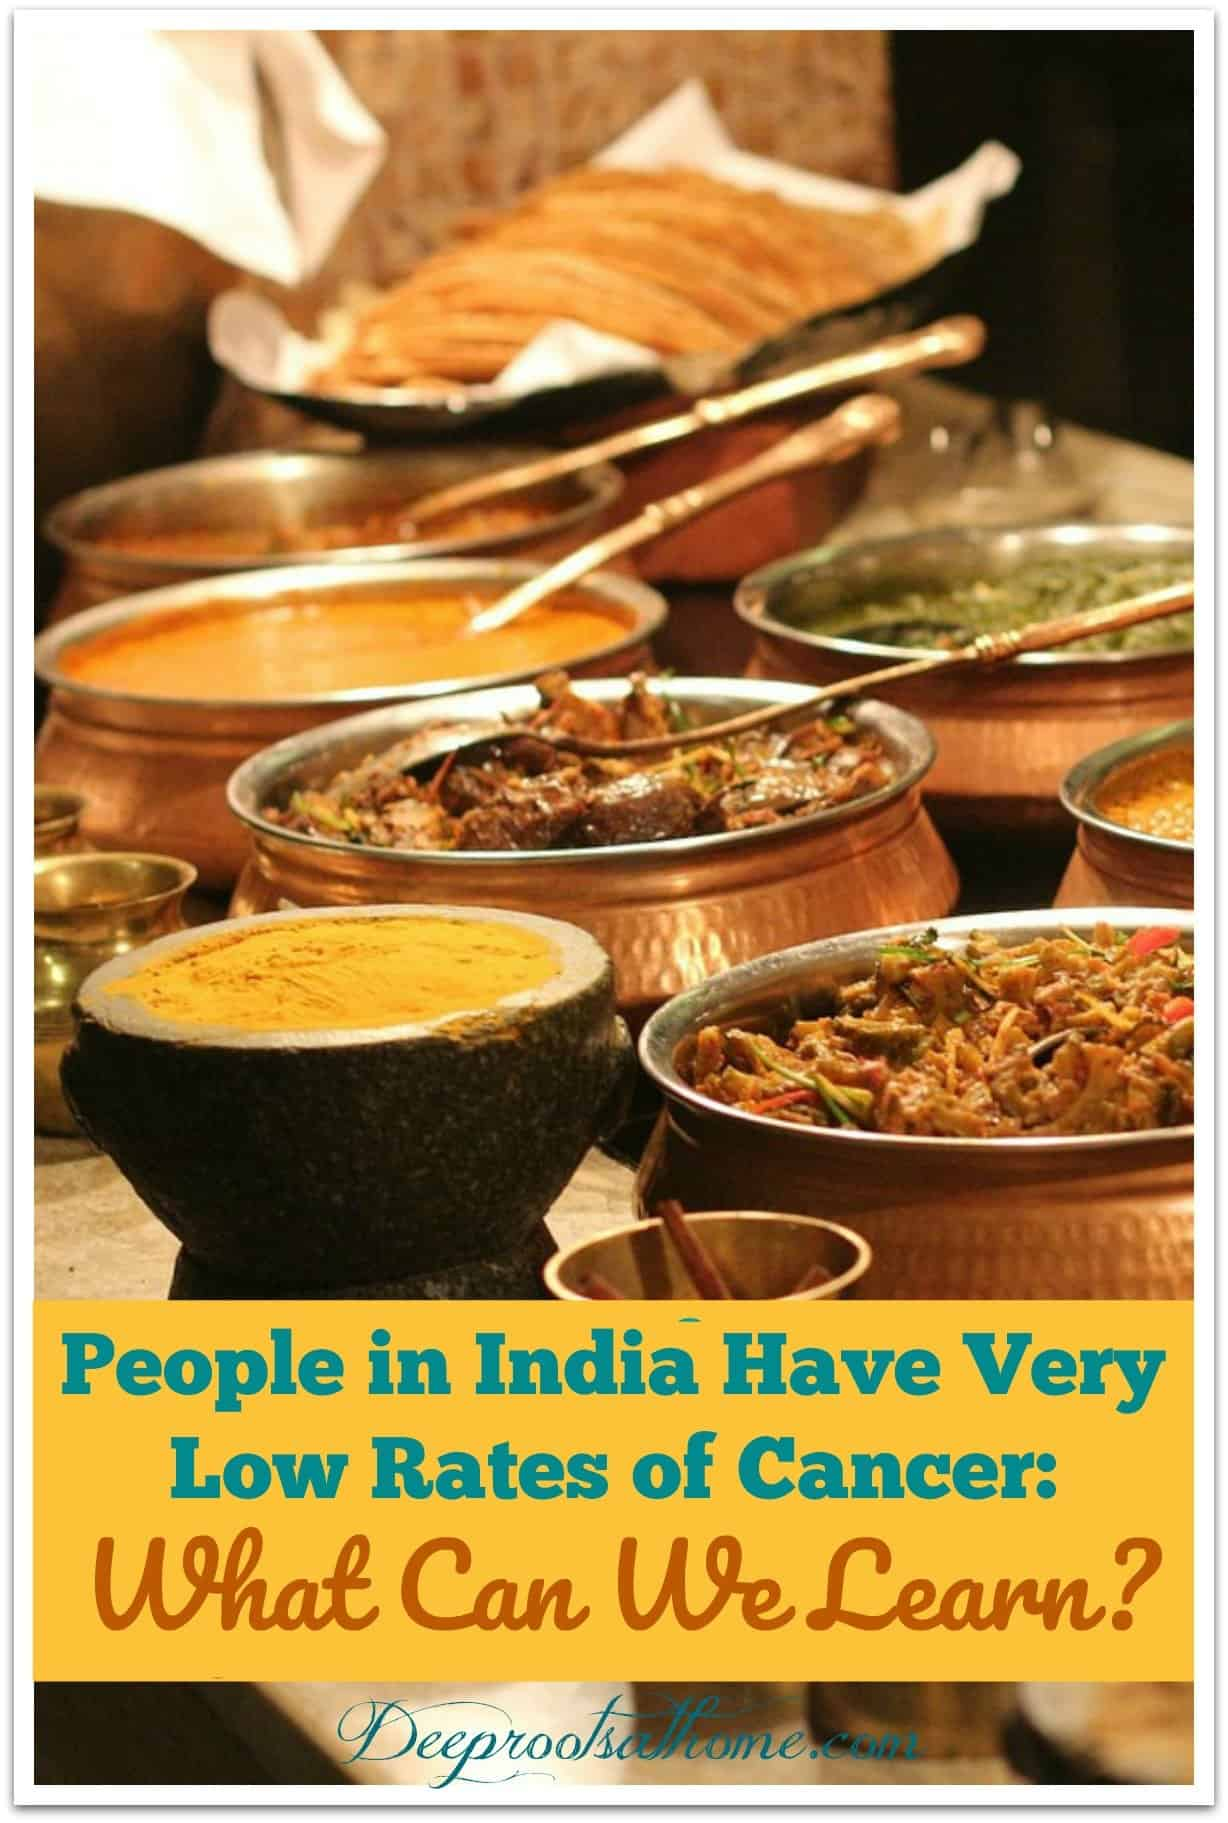 4 Things We Can Learn from the Lower Cancer Rates in India . Spices and Indian foods